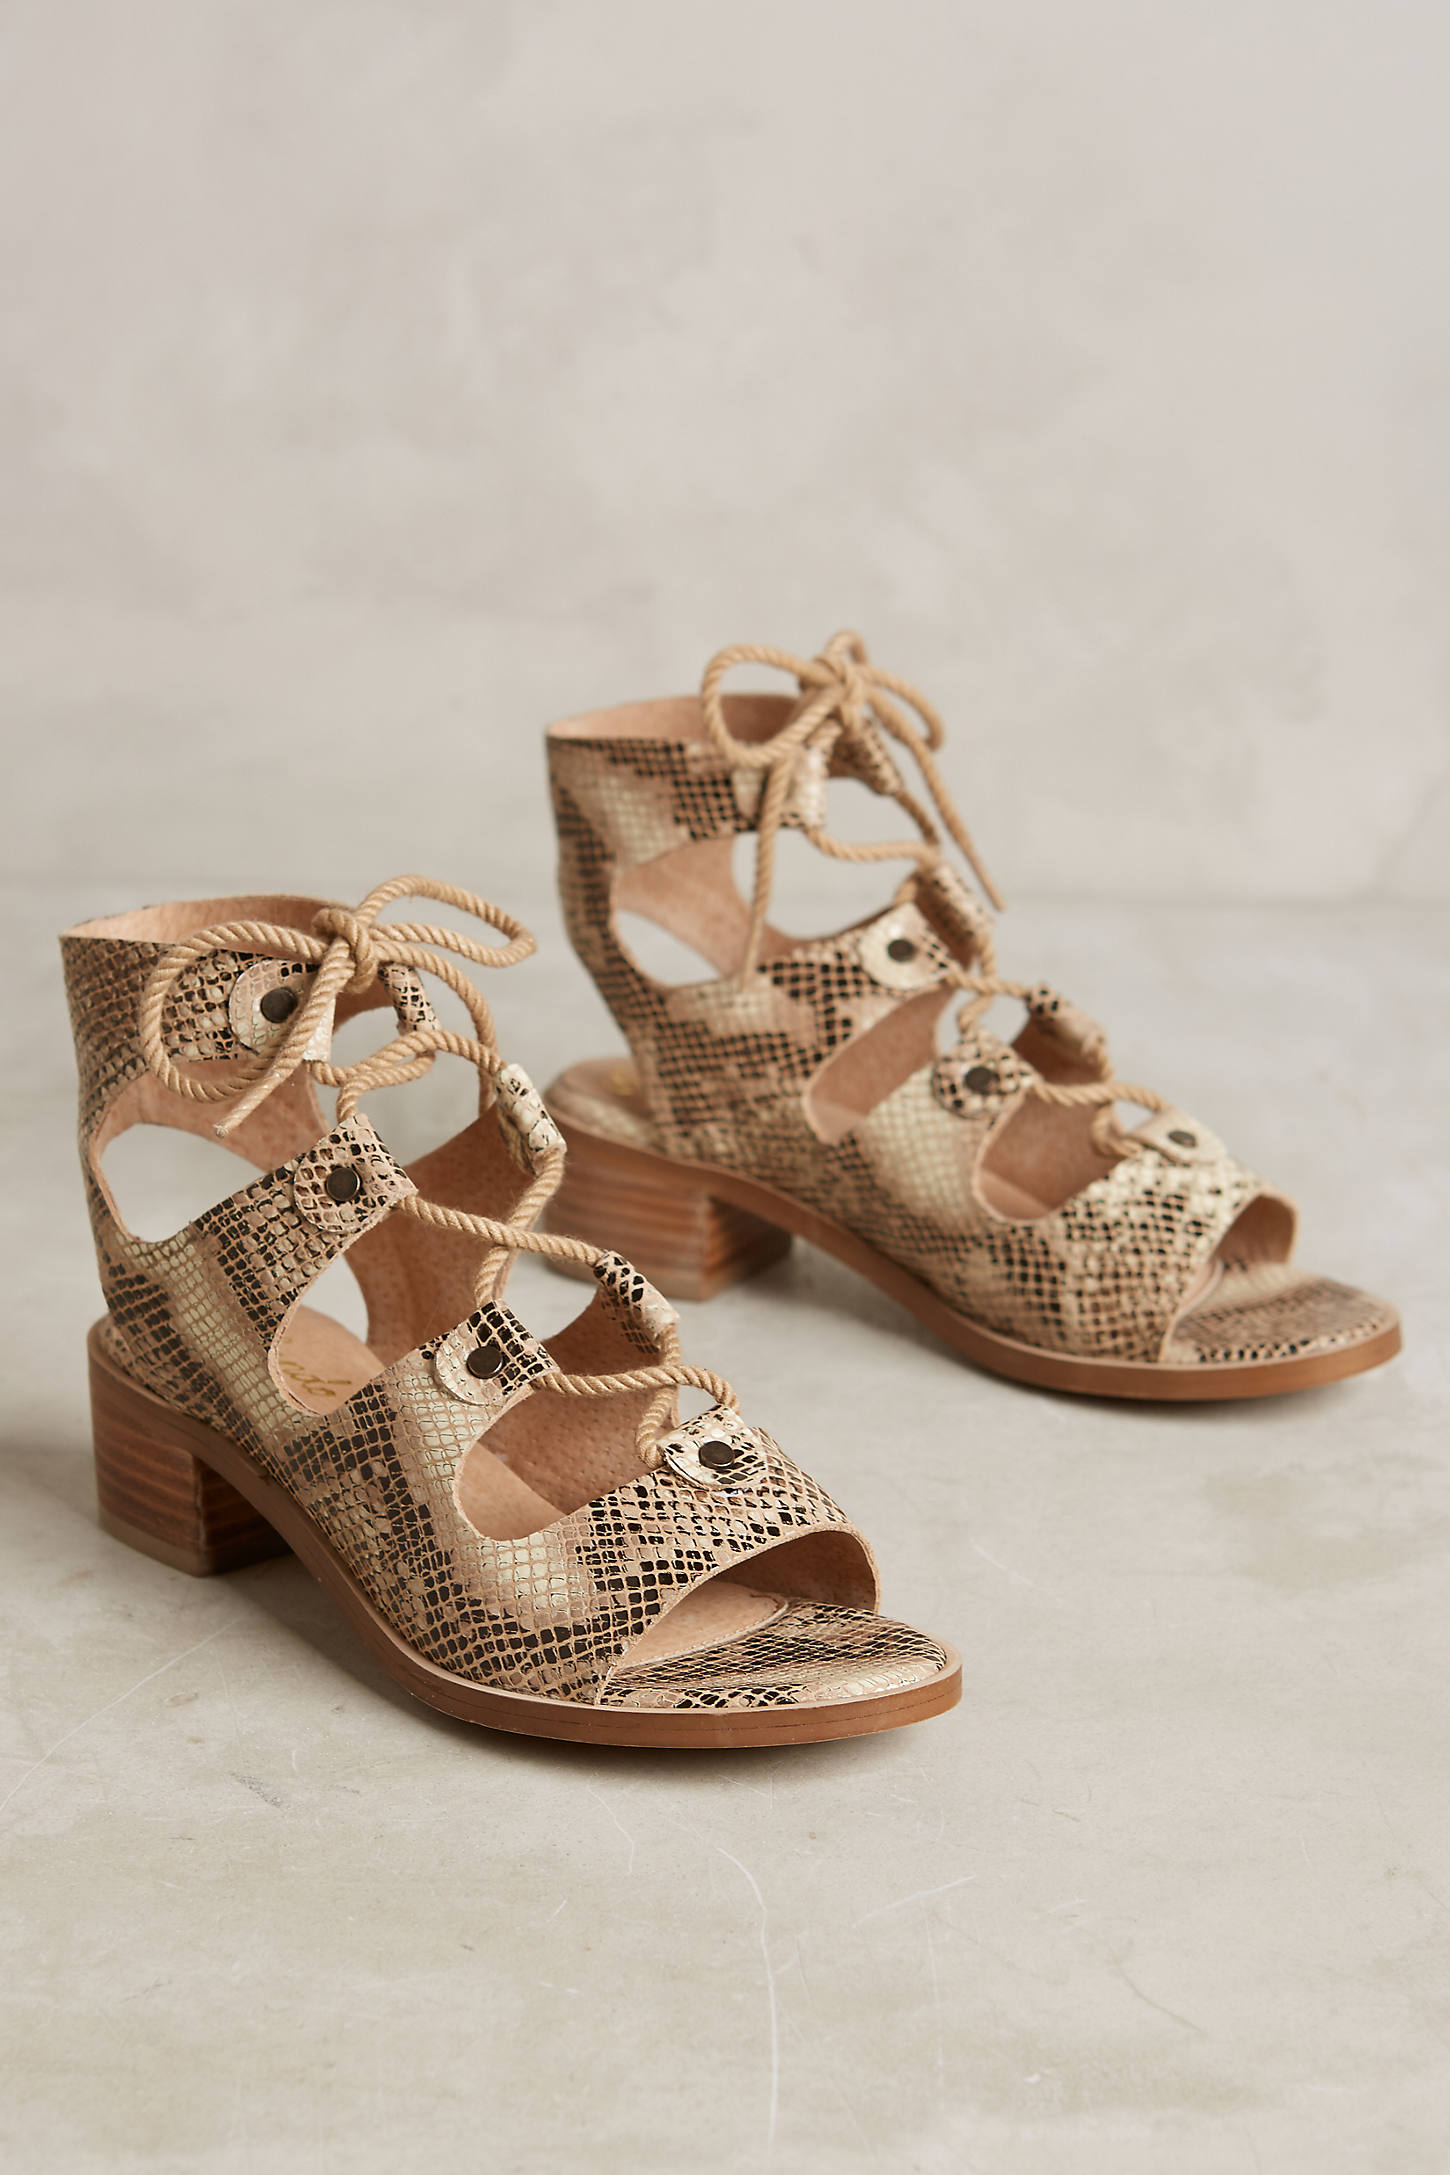 Liendo By Seychelles Marbella Lace-Up Sandals